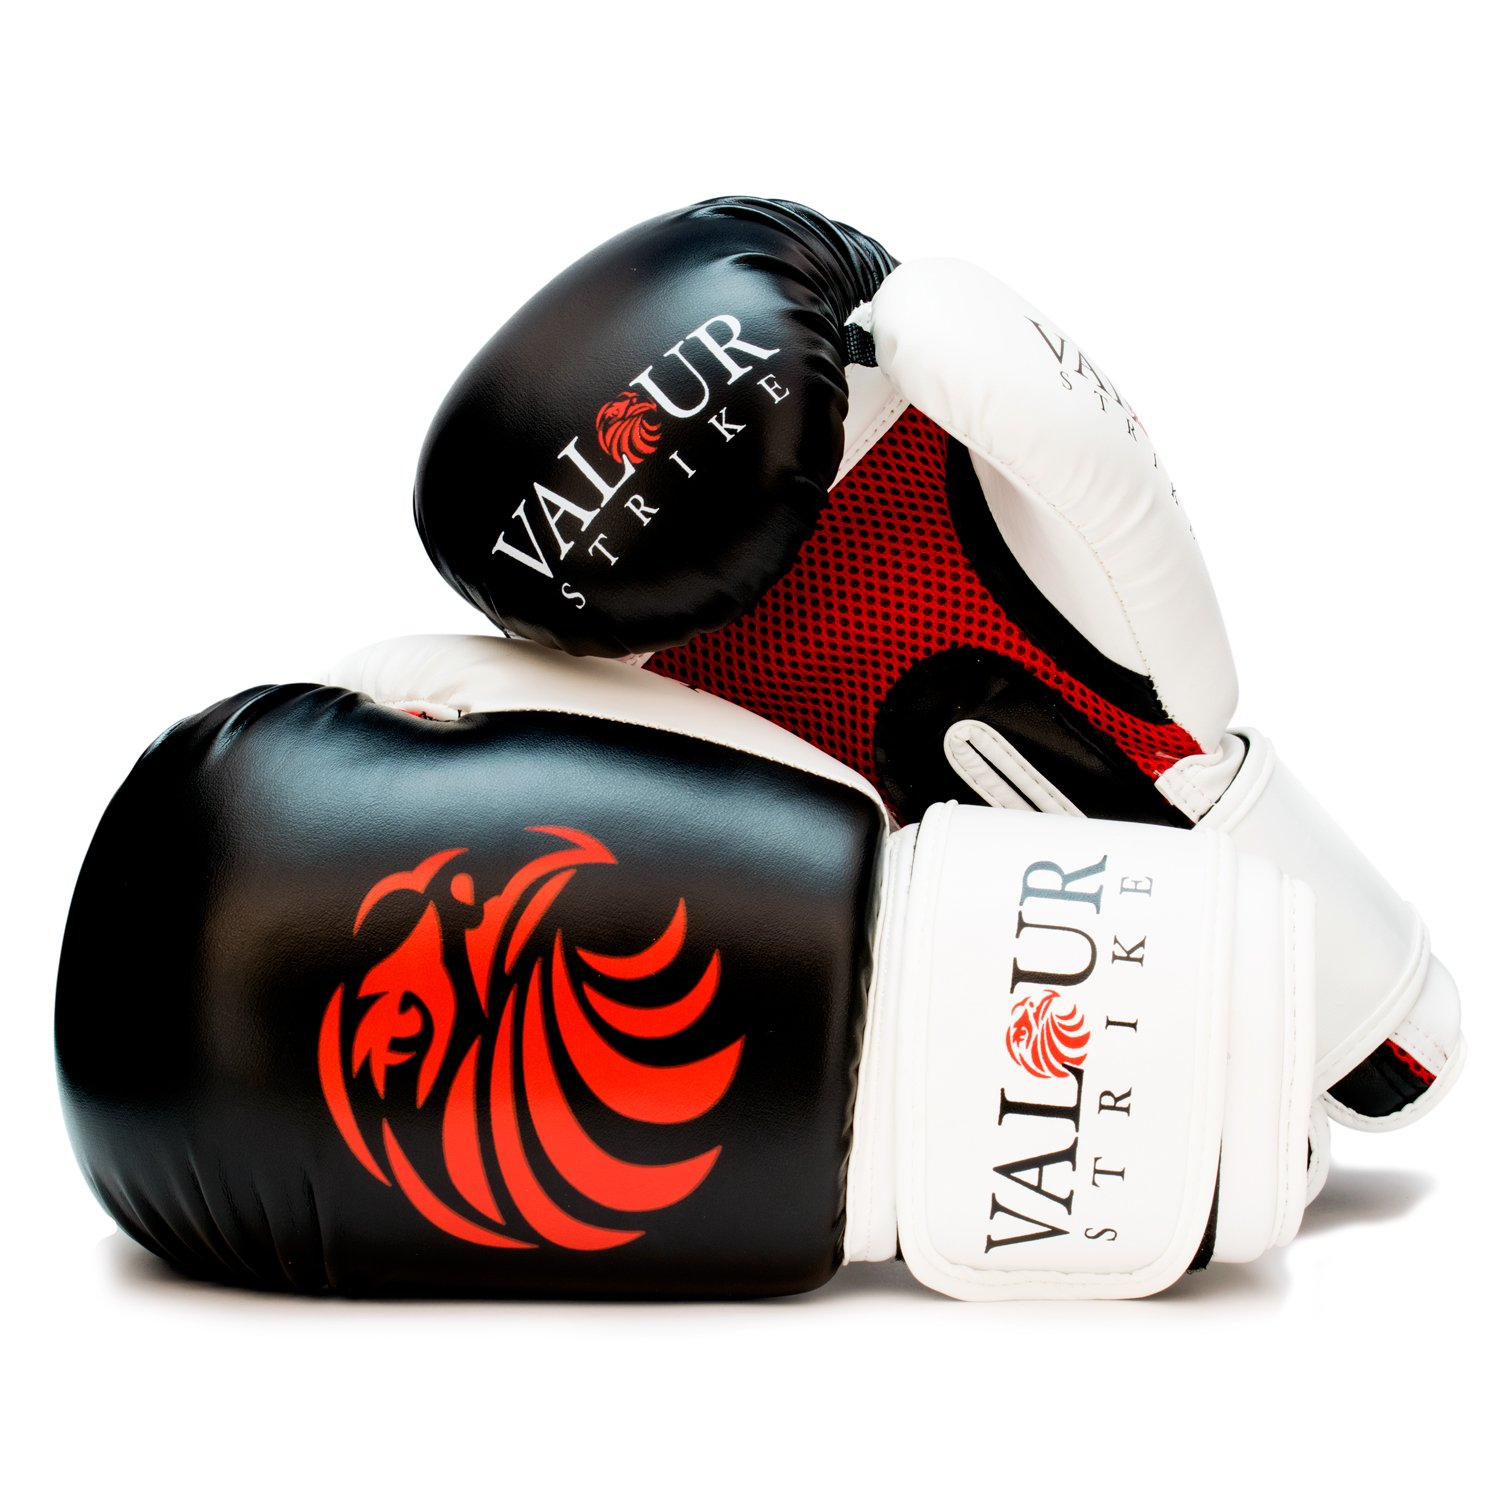 Valour Strike Boxing Gloves Sparring ☆ Pro 4oz - 16oz Punch Bag Fight MMA  Muay Thai Grappling Fight Mitts Martial Arts Training Kickboxing Punching  Glove ... 14682bb87ff2d